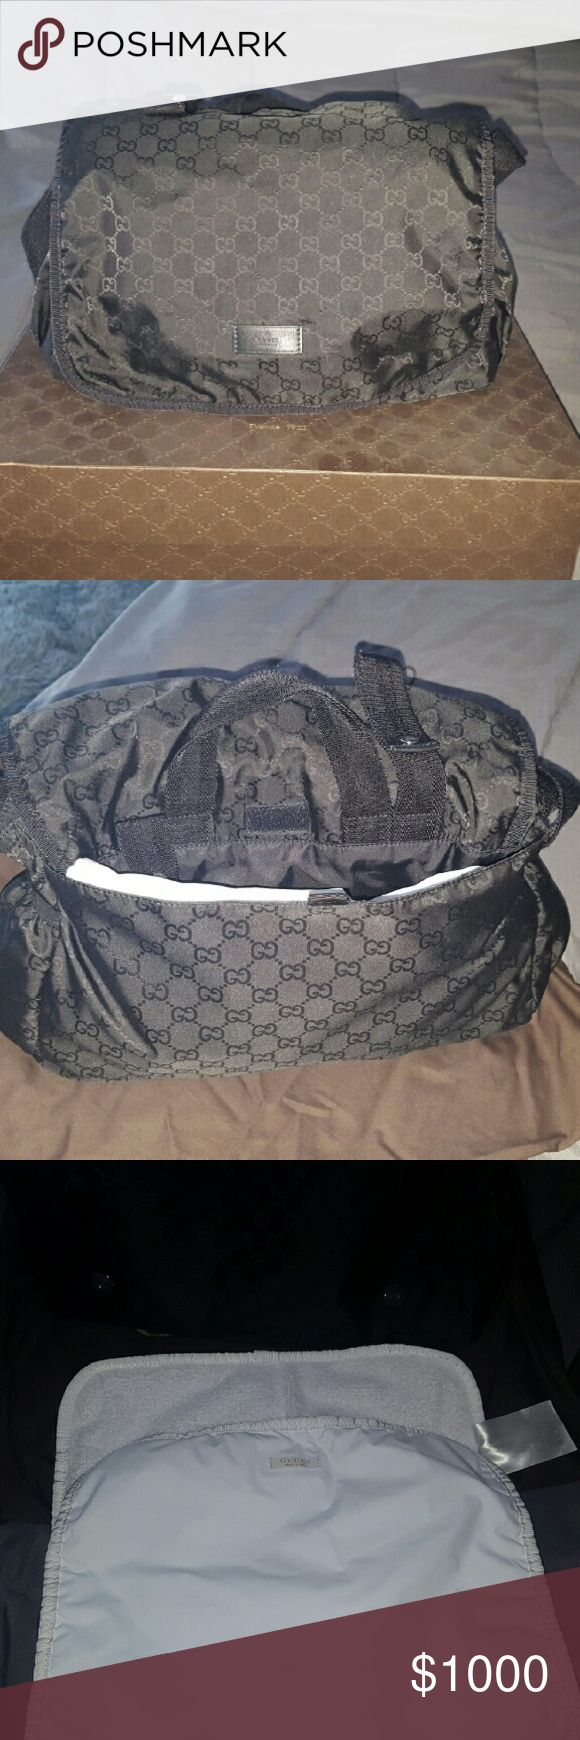 Black gucci diaper bag 100% authentic. I m selling my diaper bag Its used but its like new. I have the receipt the dust bag and also the box. Gucci Bags Baby Bags